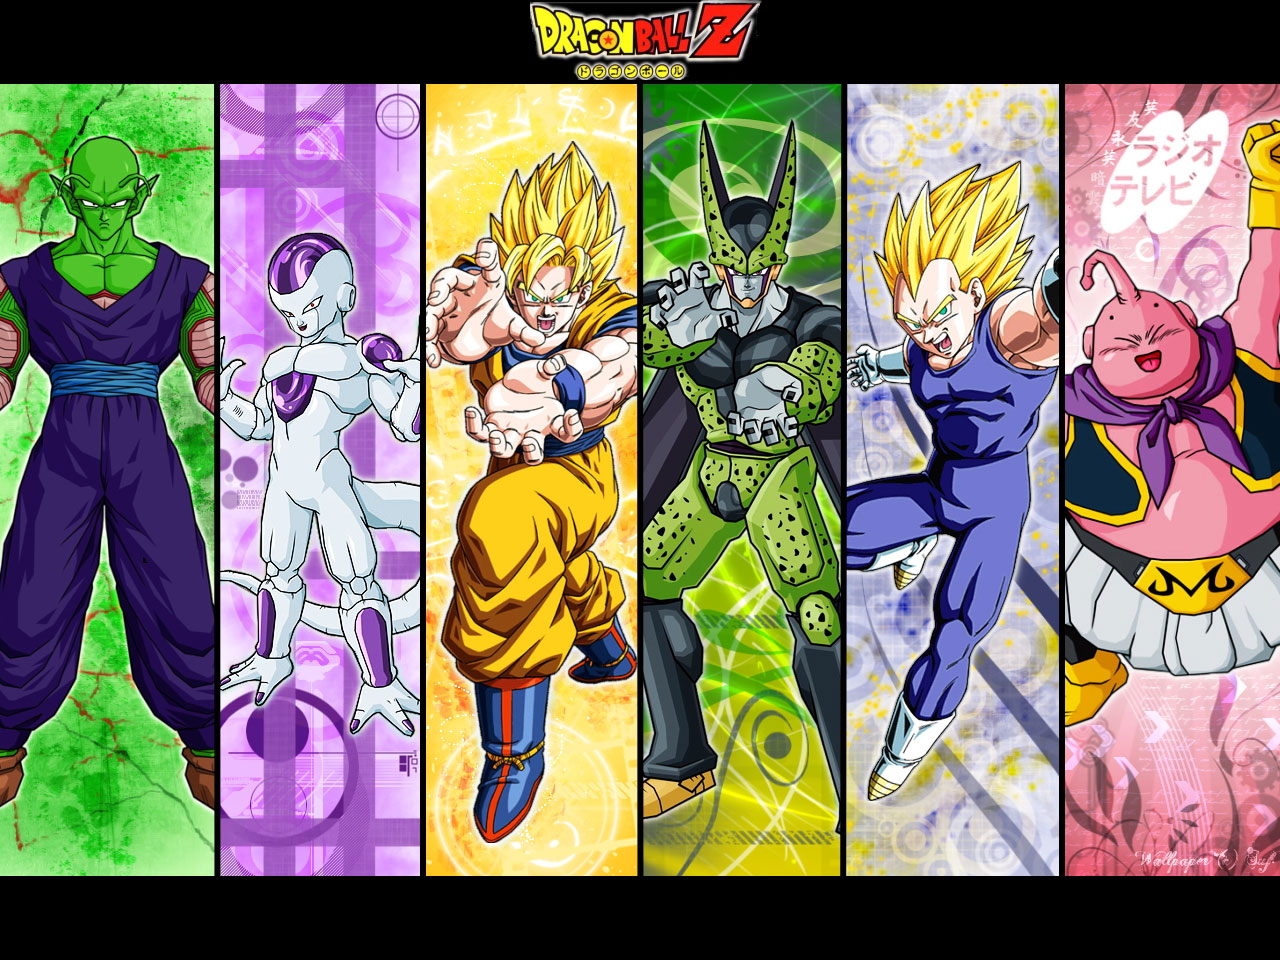 Dragon Ball Z imagens e fotos de Dragon Ball Z personagens mais fortes